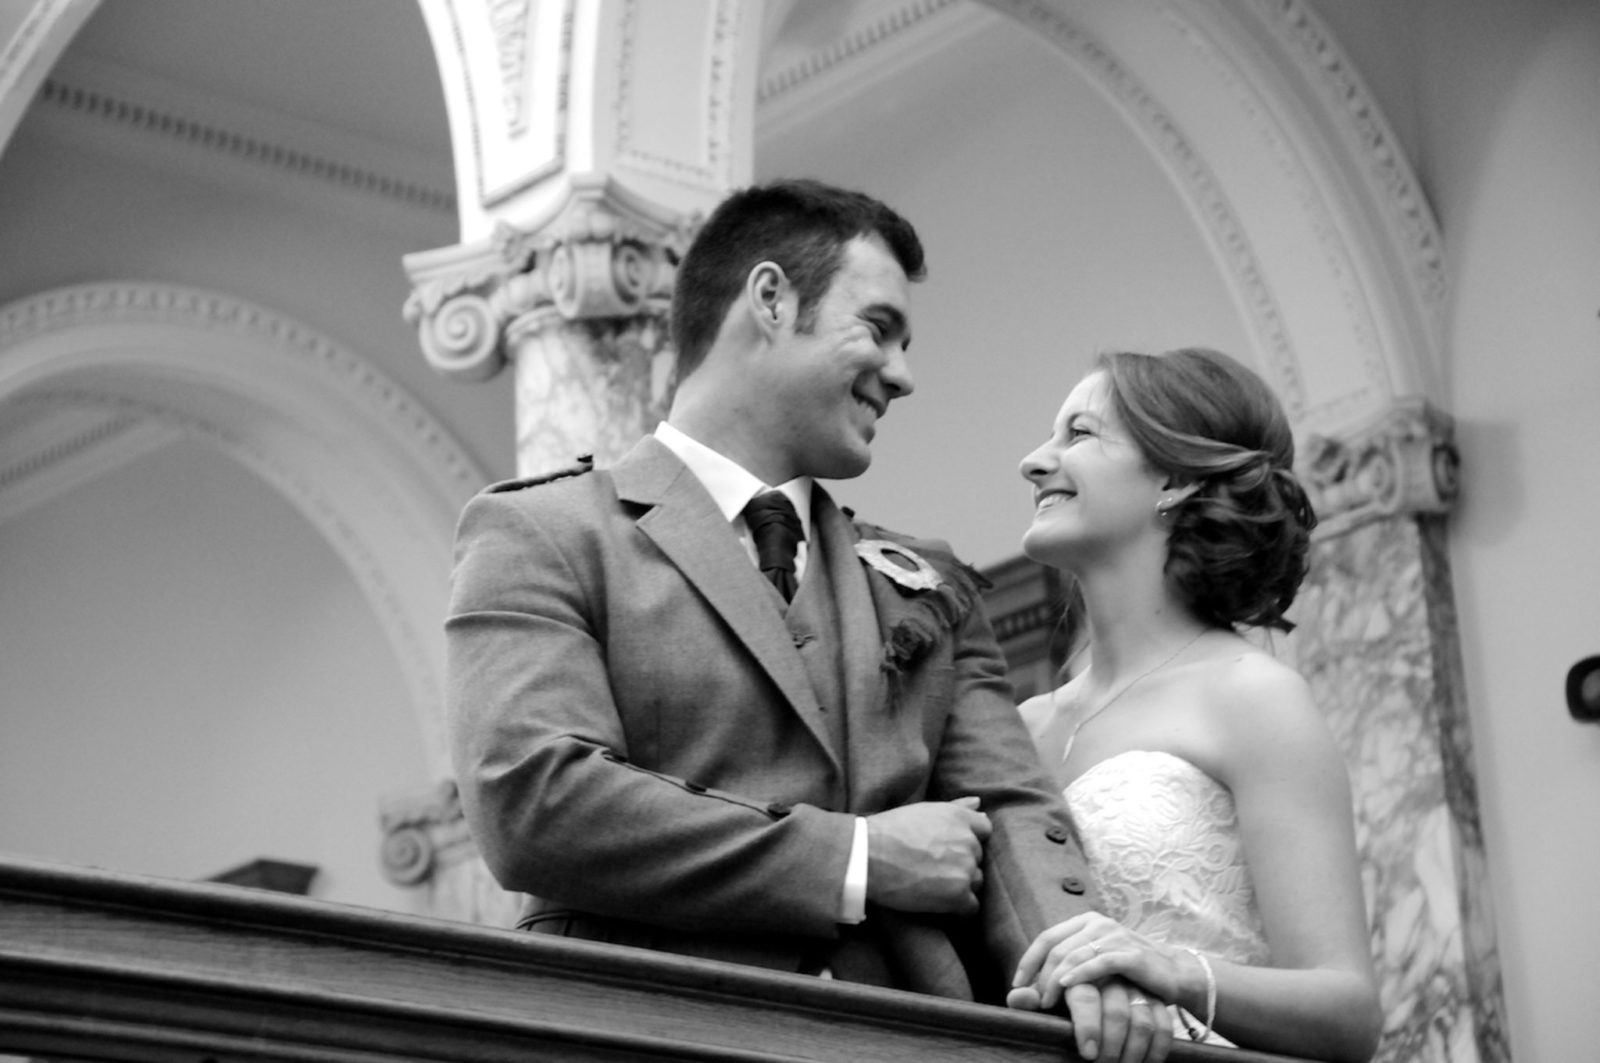 Edinburgh wedding